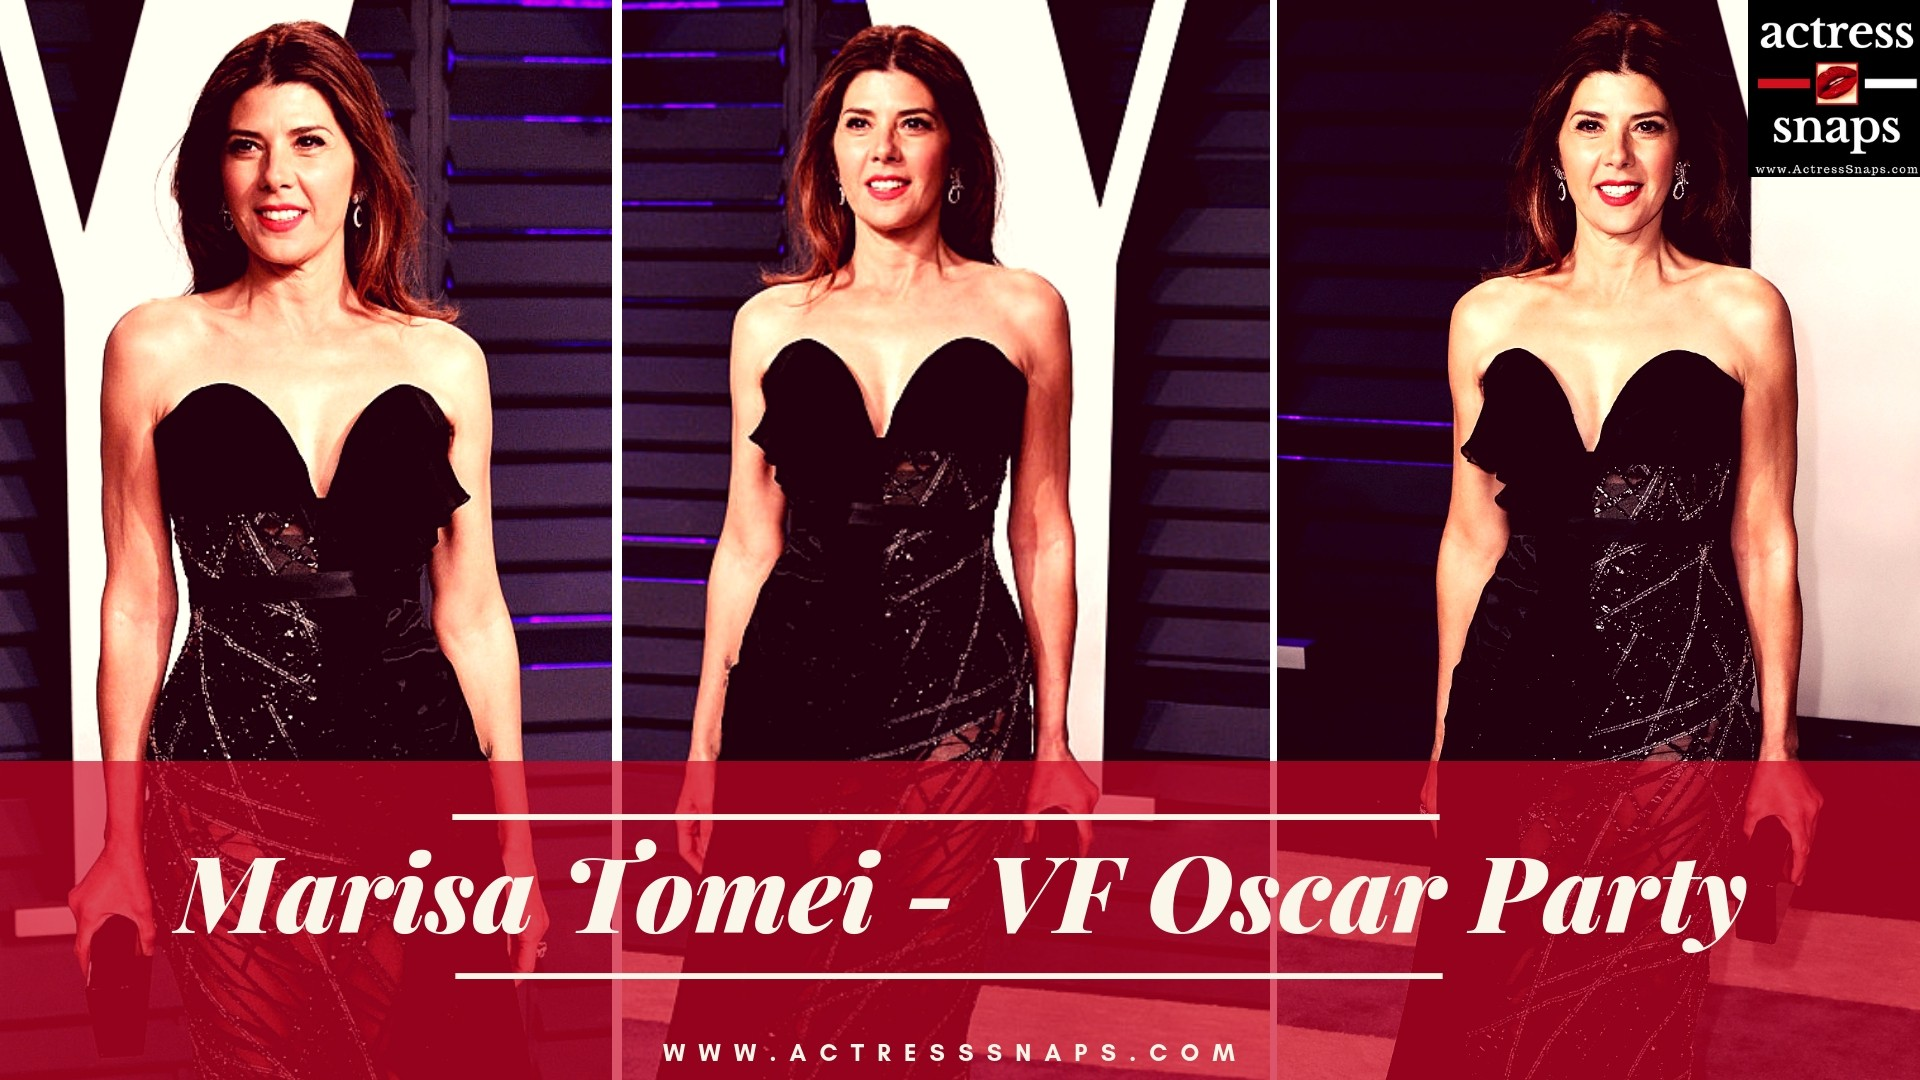 Marisa Tomei - Vanity Fair Oscar Party - Sexy Actress Pictures | Hot Actress Pictures - ActressSnaps.com